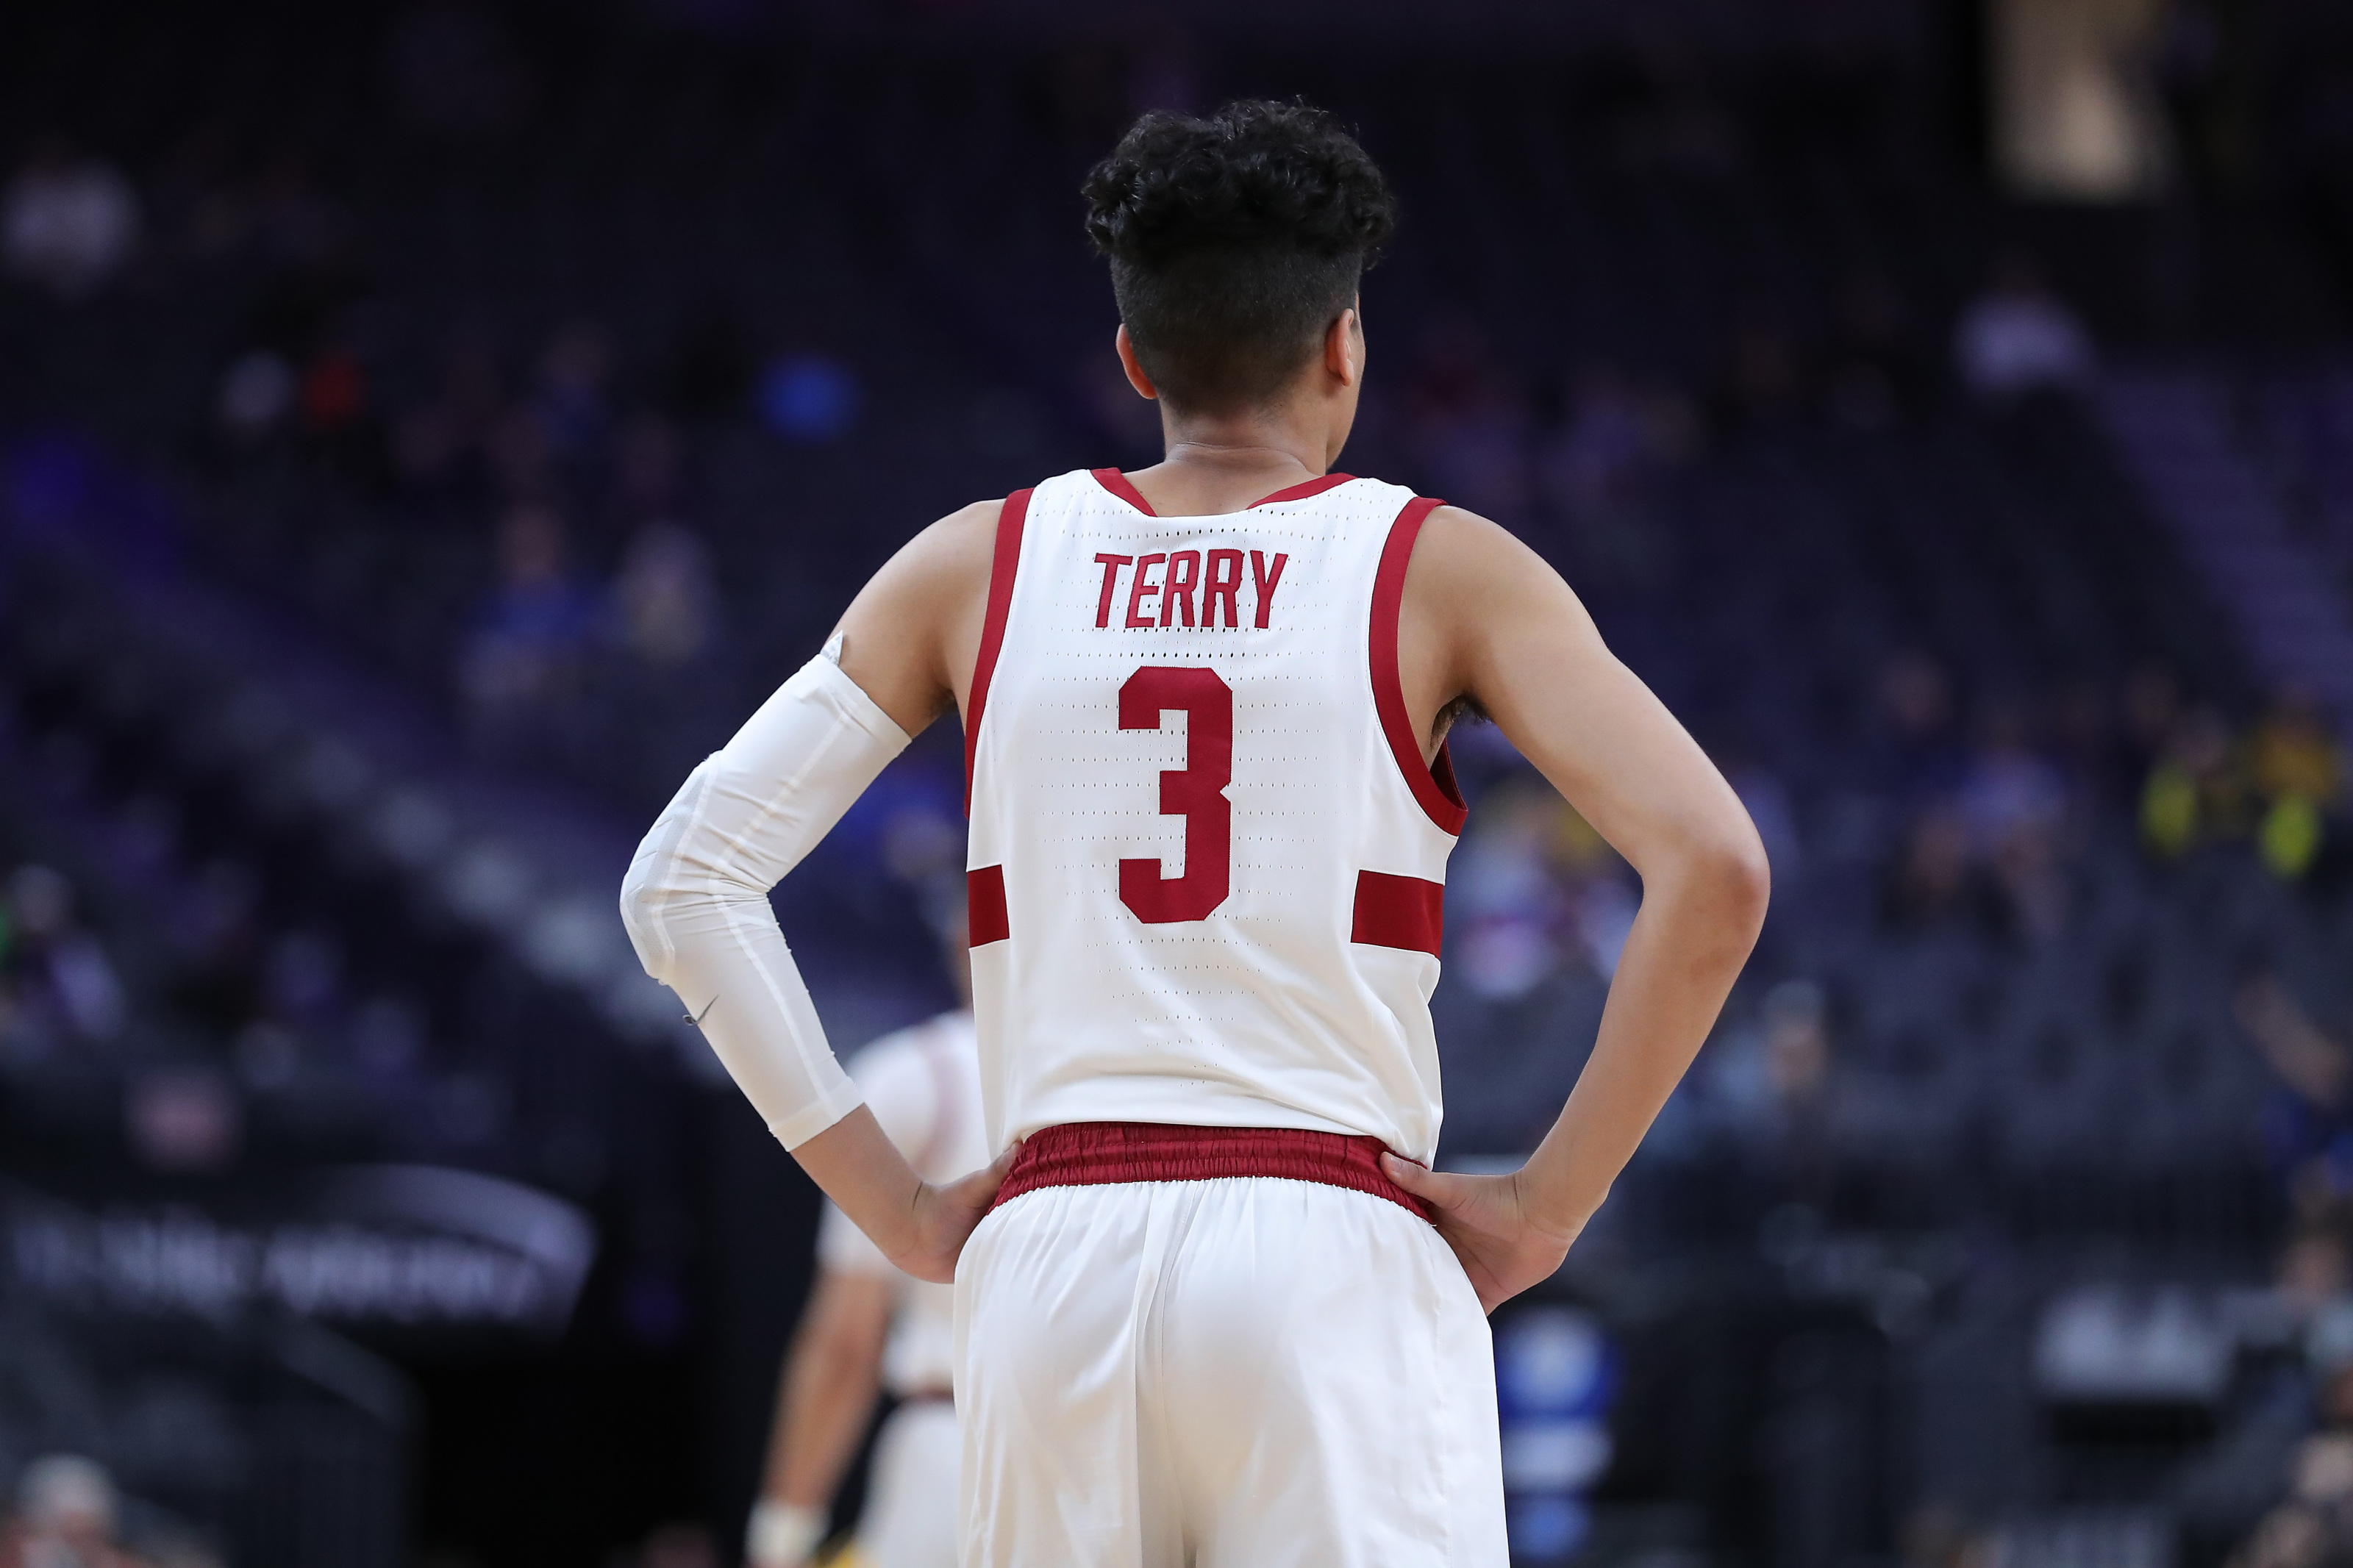 Stanford Basketball: Tyrell Terry declares for the 2020 NBA Draft